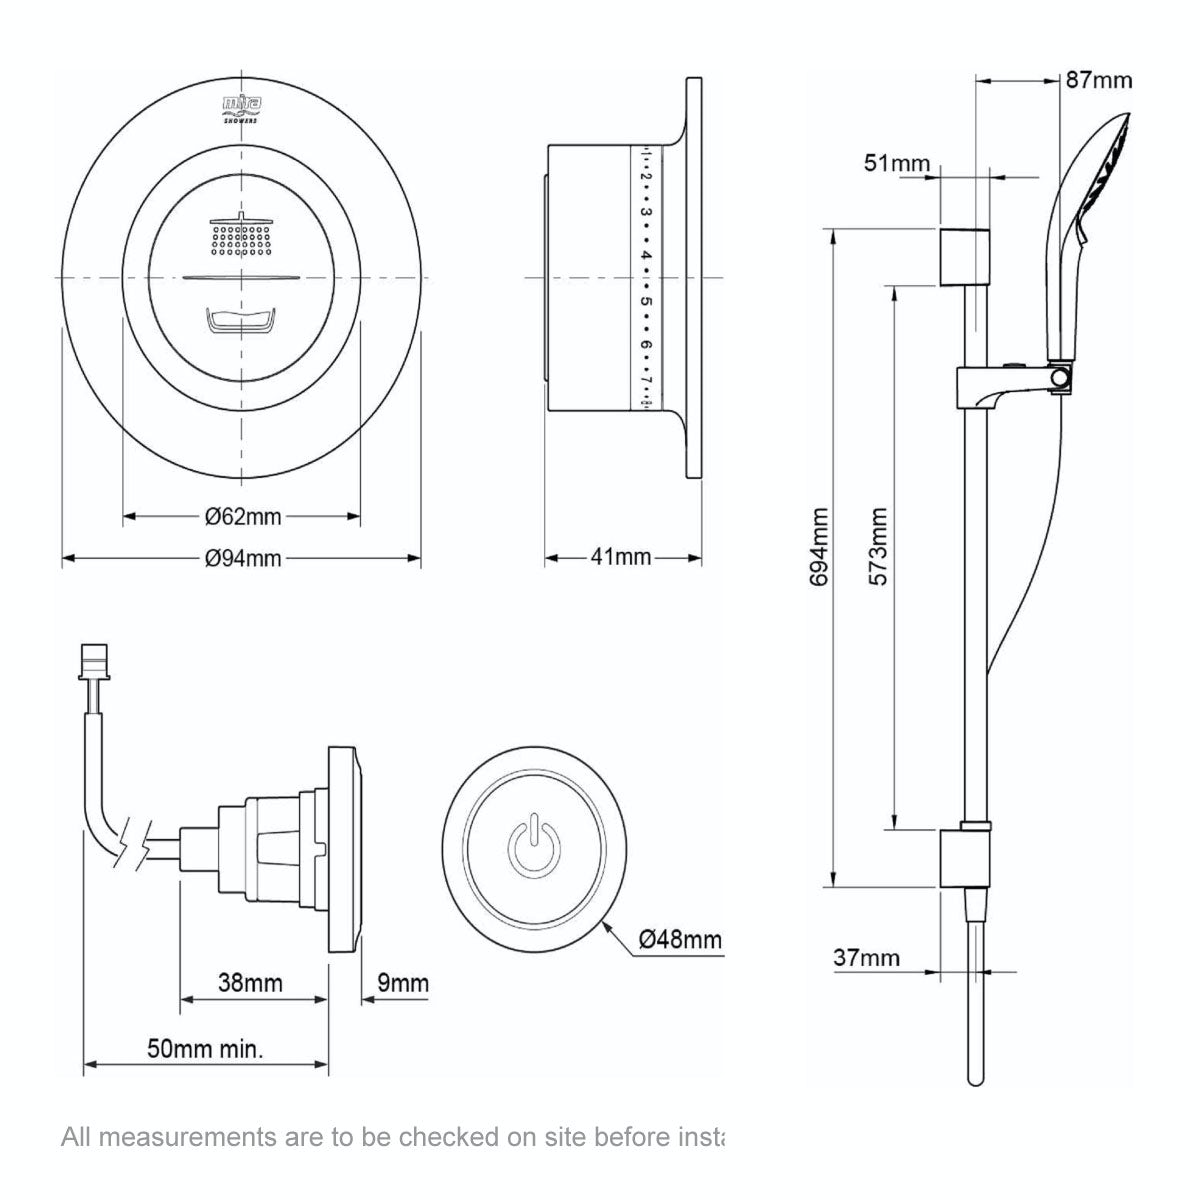 Dimensions for Mira Mode rear fed digital shower pumped